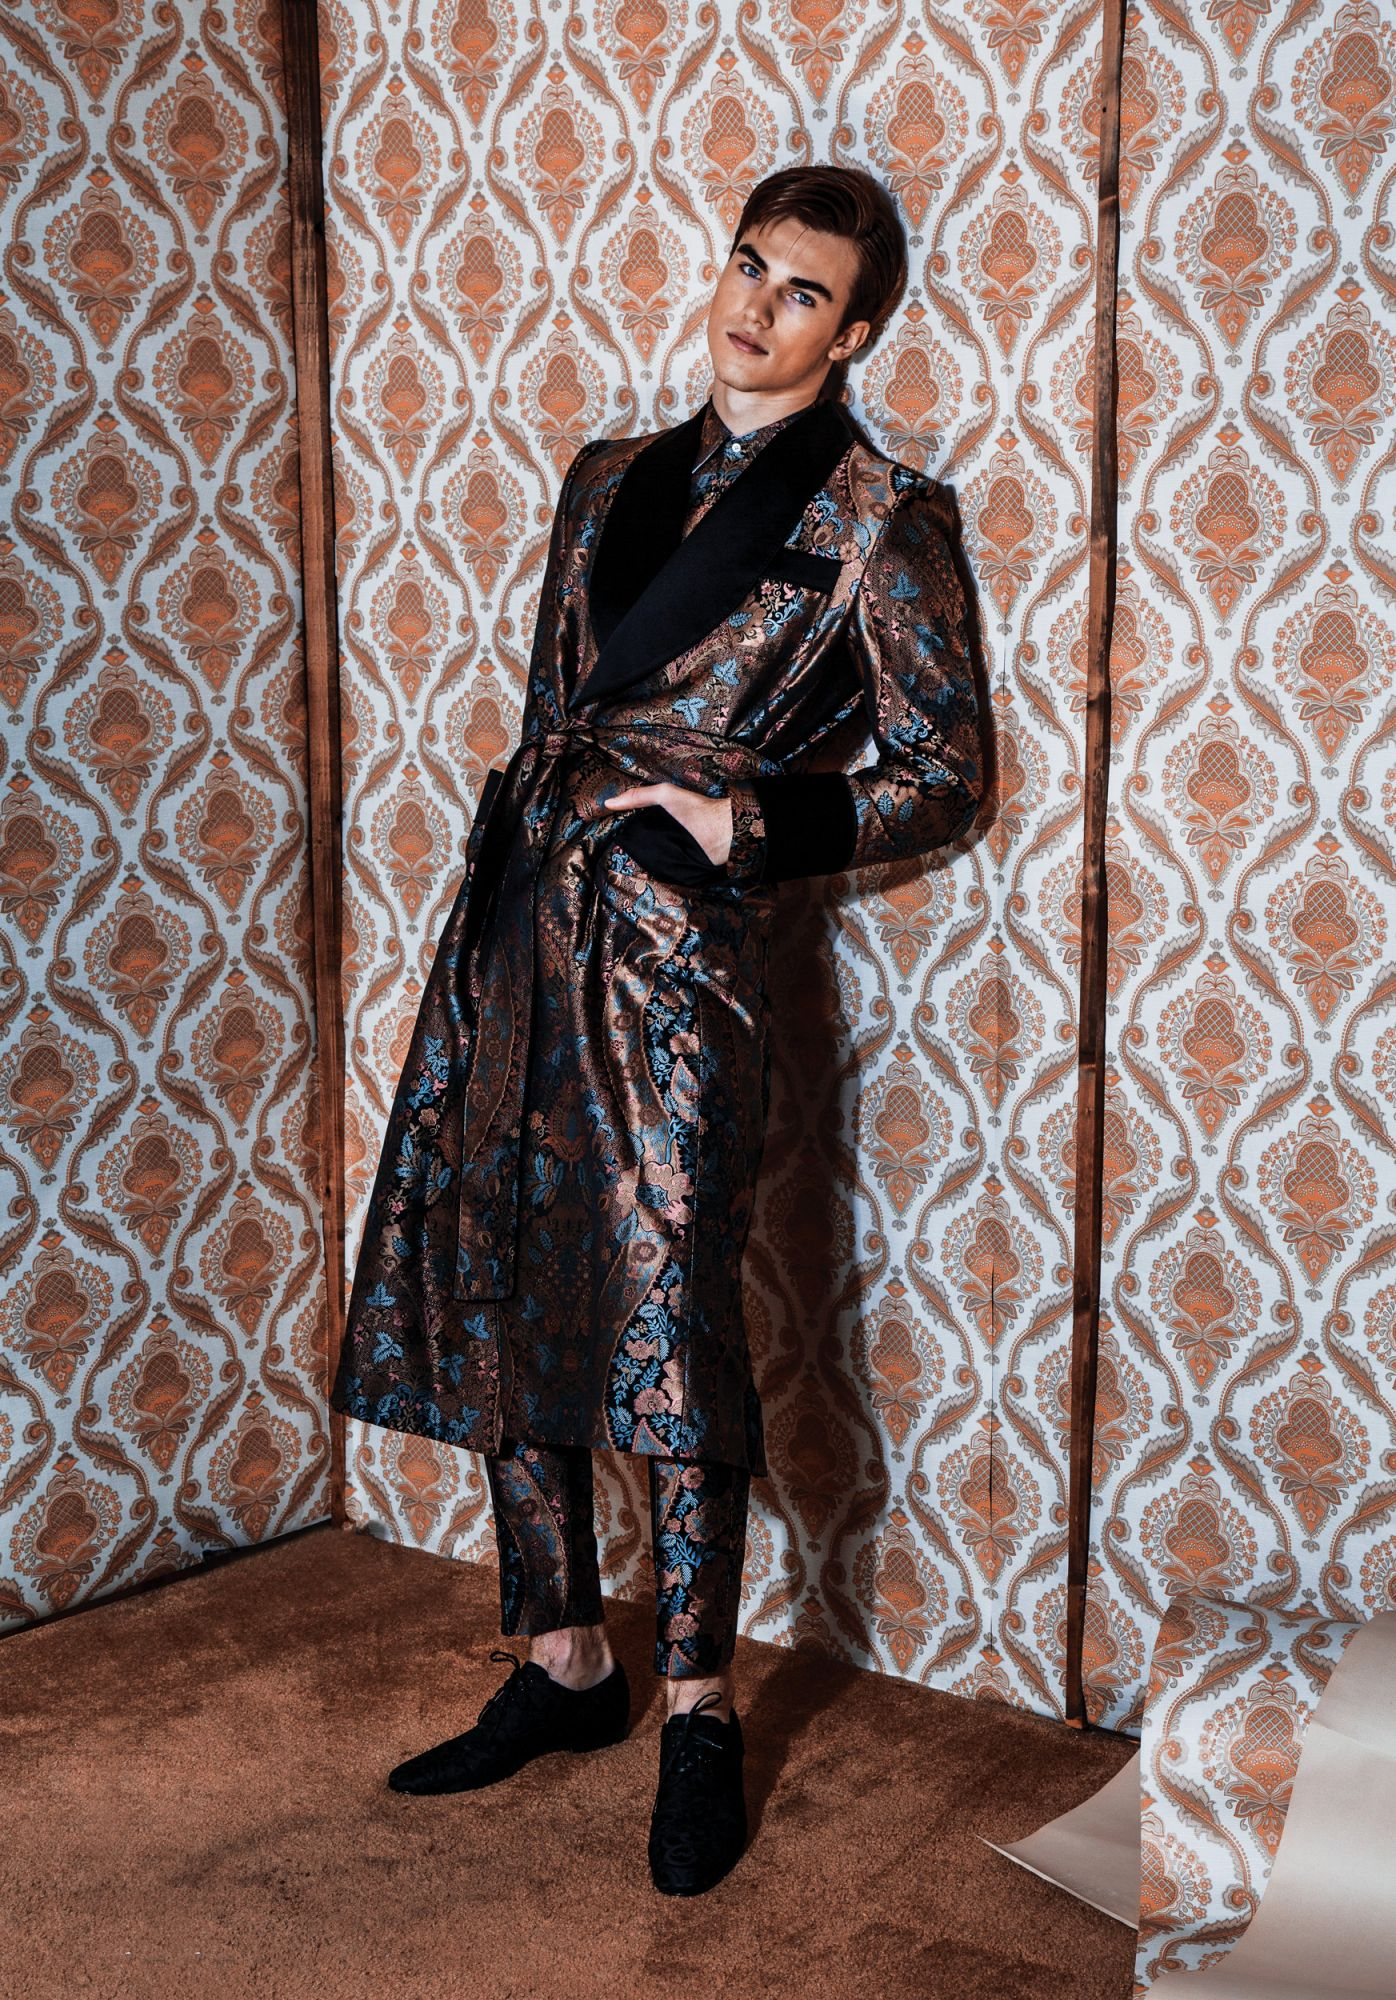 Floral trenchcoat and pants by Dolce & Gabbana